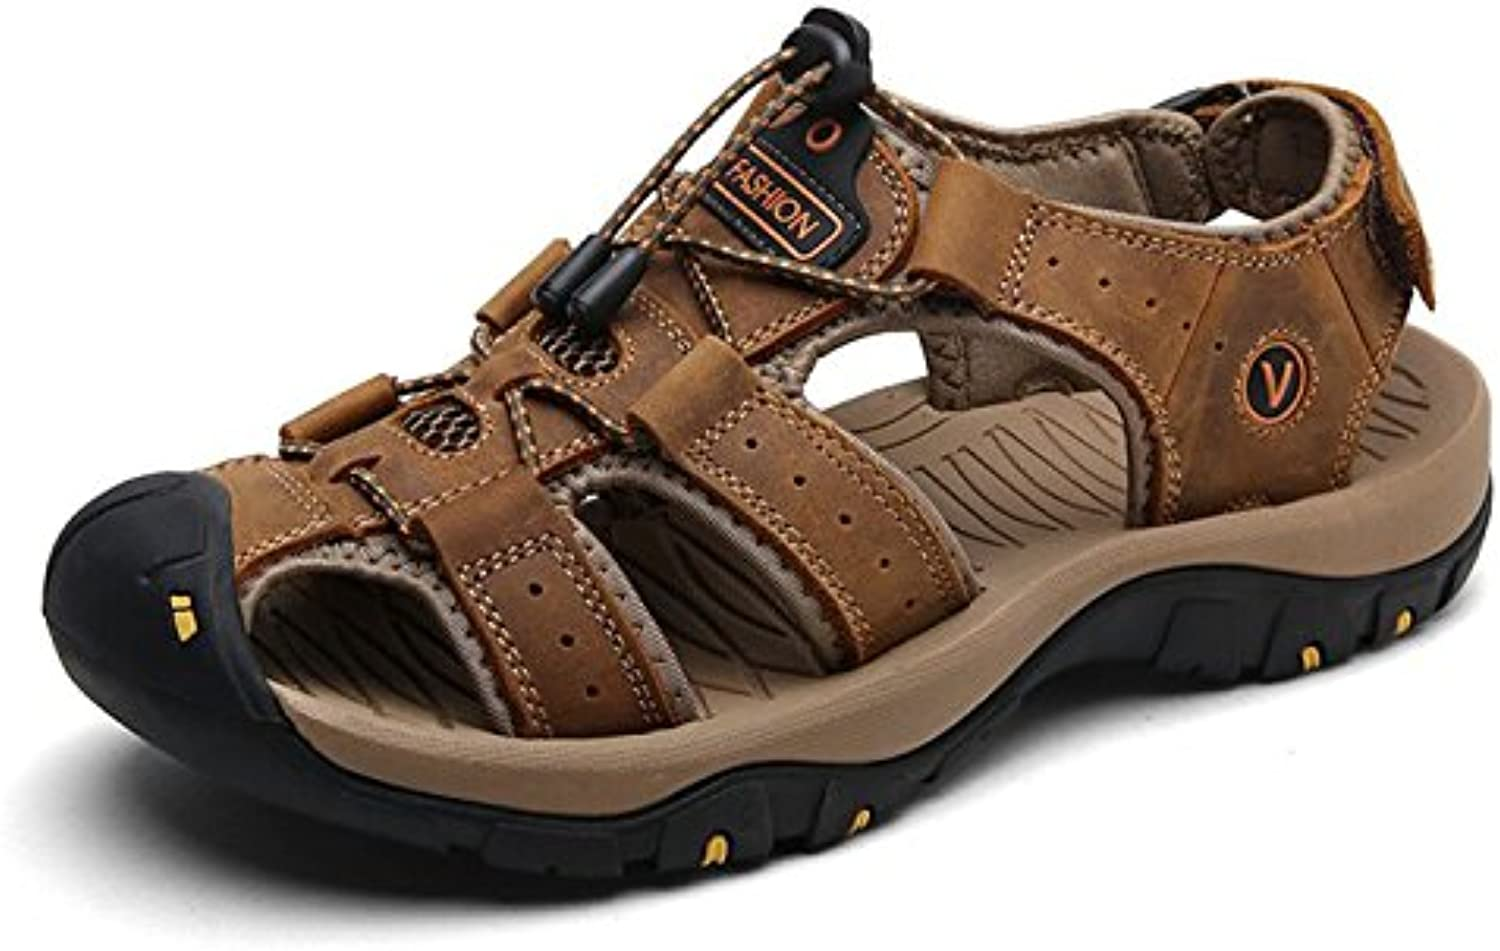 Genuine Leather Men Shoes Summer New Large Size Men's Sandals Men Sandals Fashion Sandals